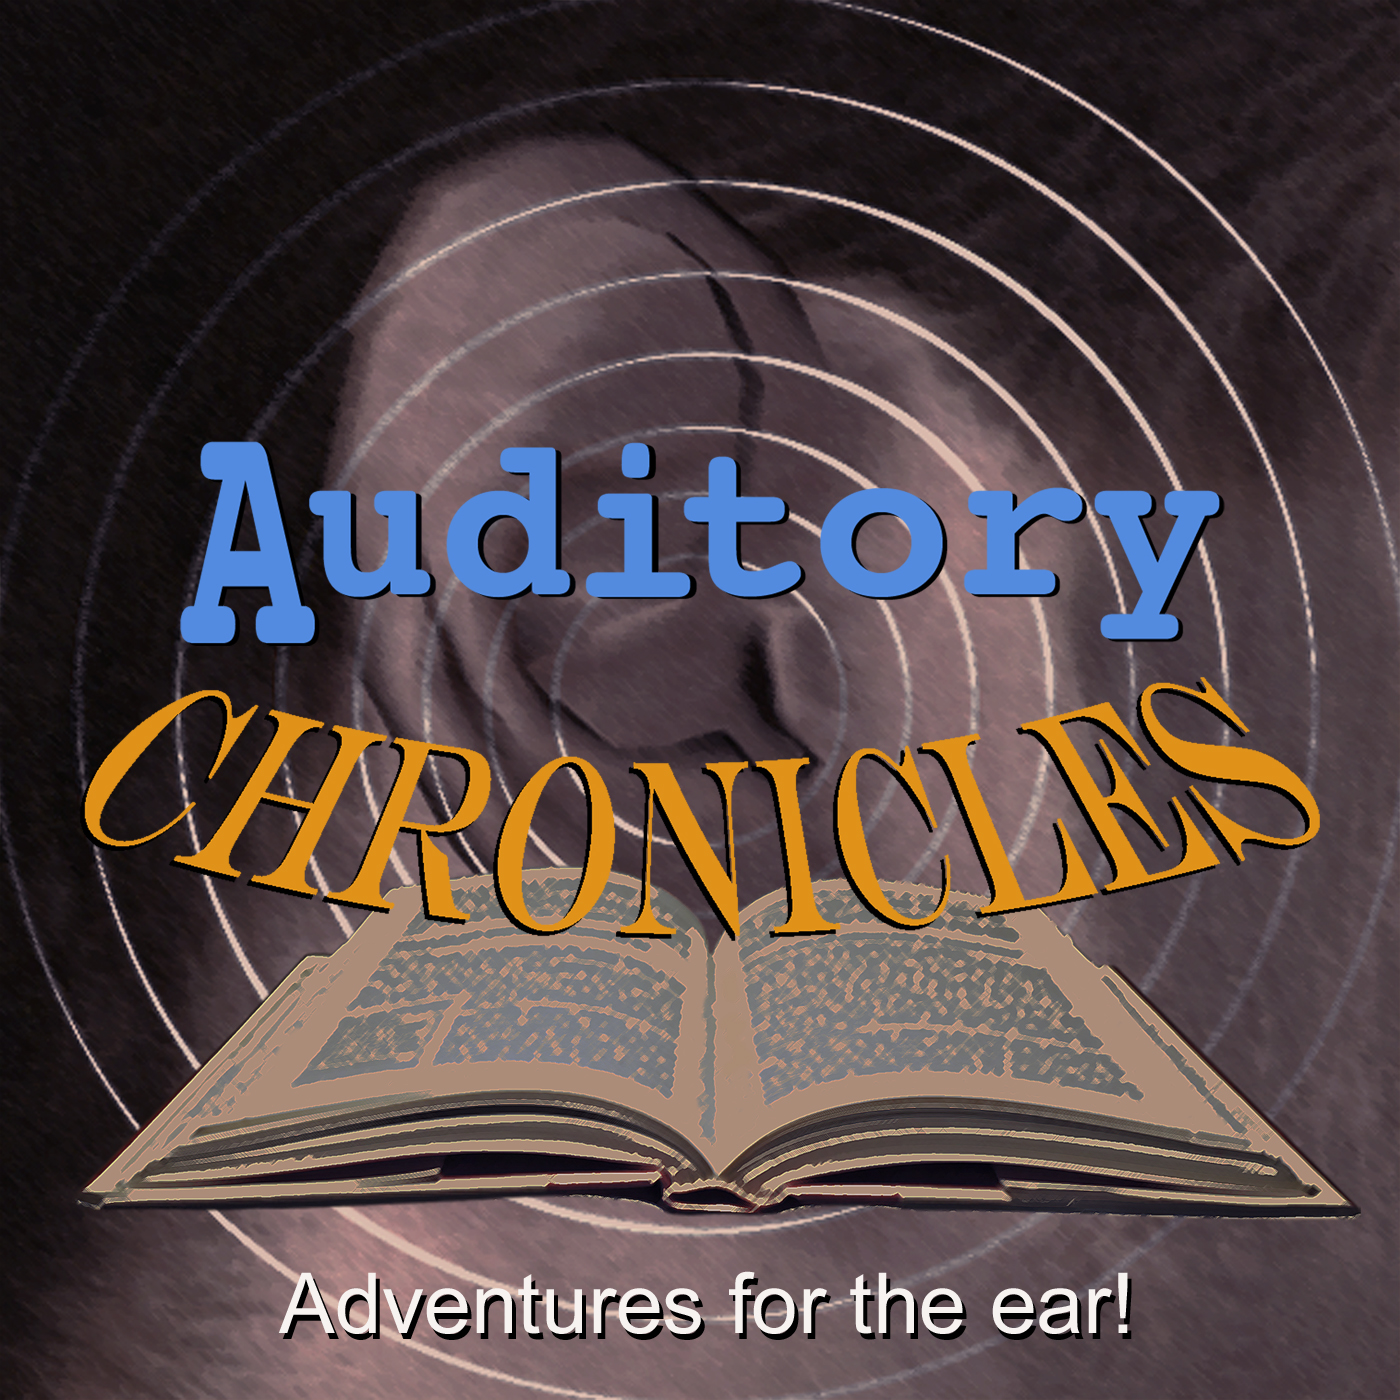 AuditoryChronicles